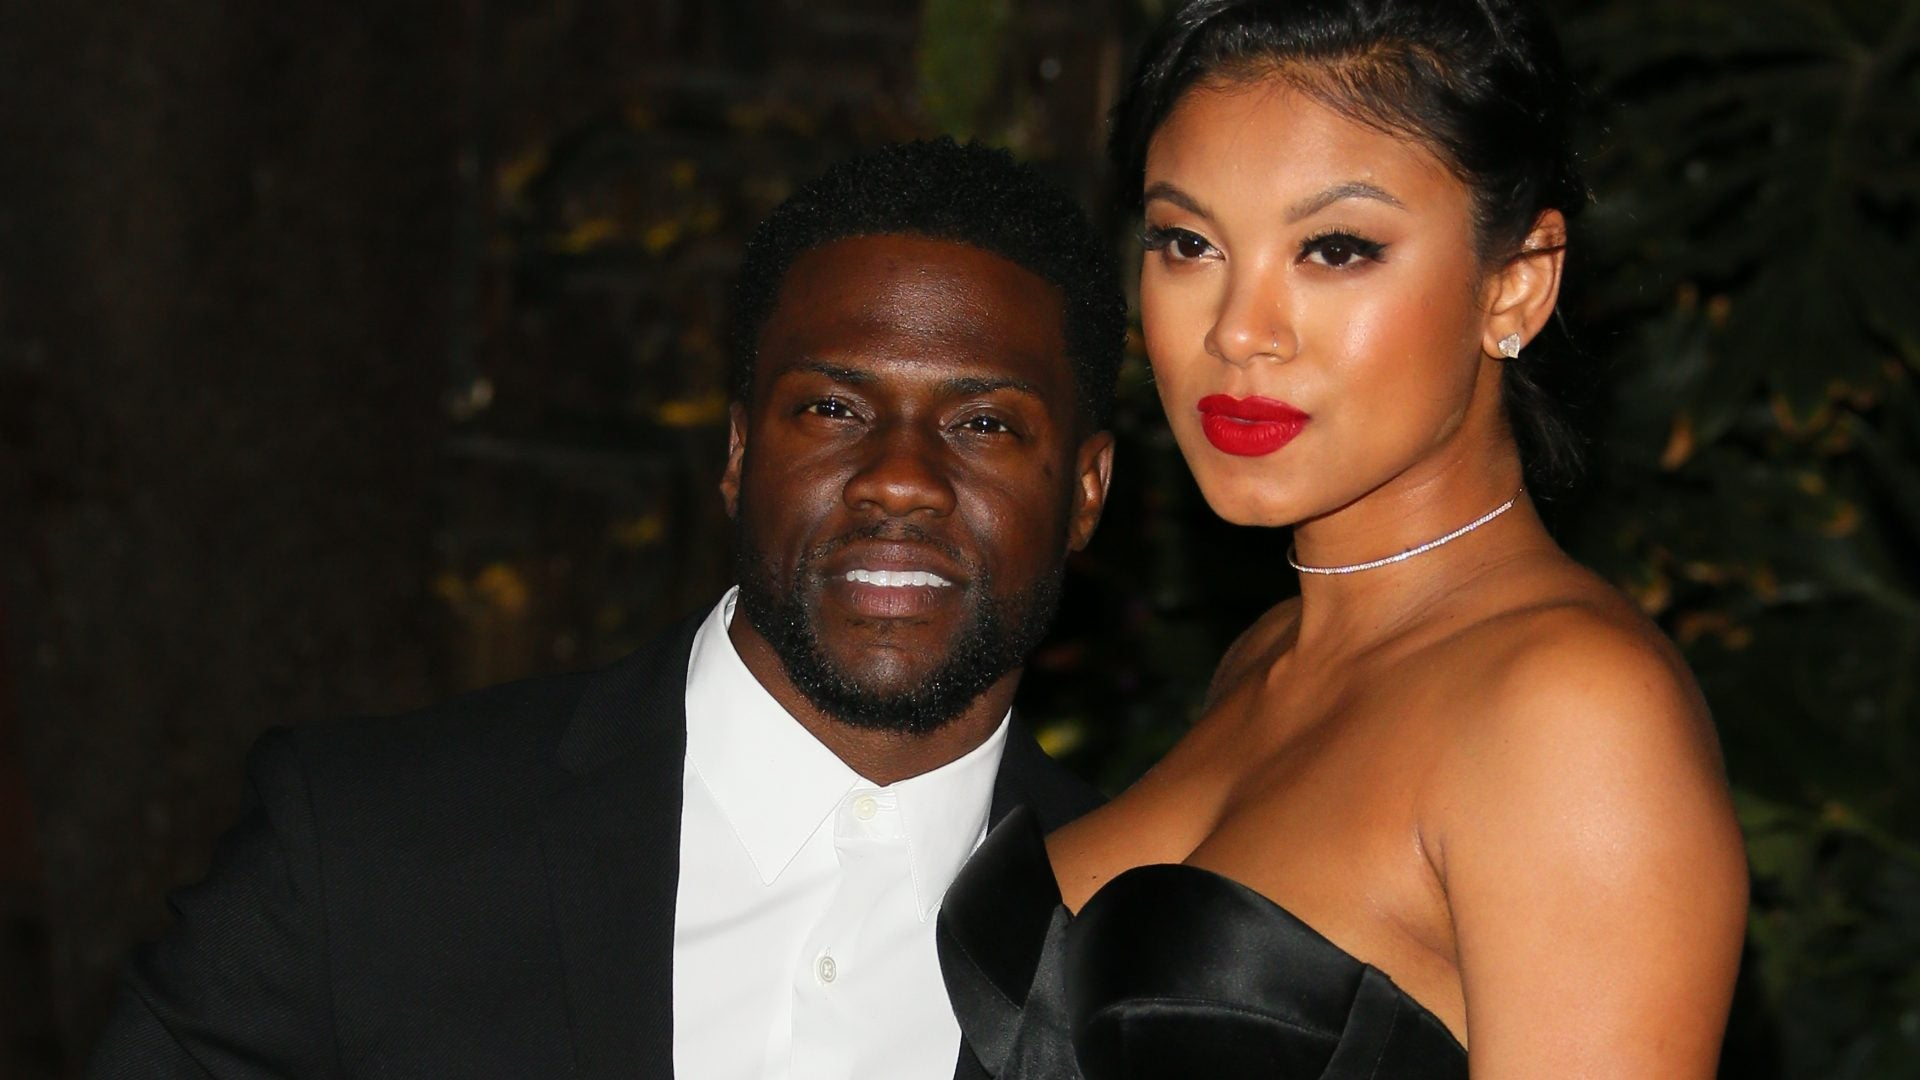 Kevin Hart's Netflix Documentary 'Don't F**k This Up' Addresses Cheating Scandal